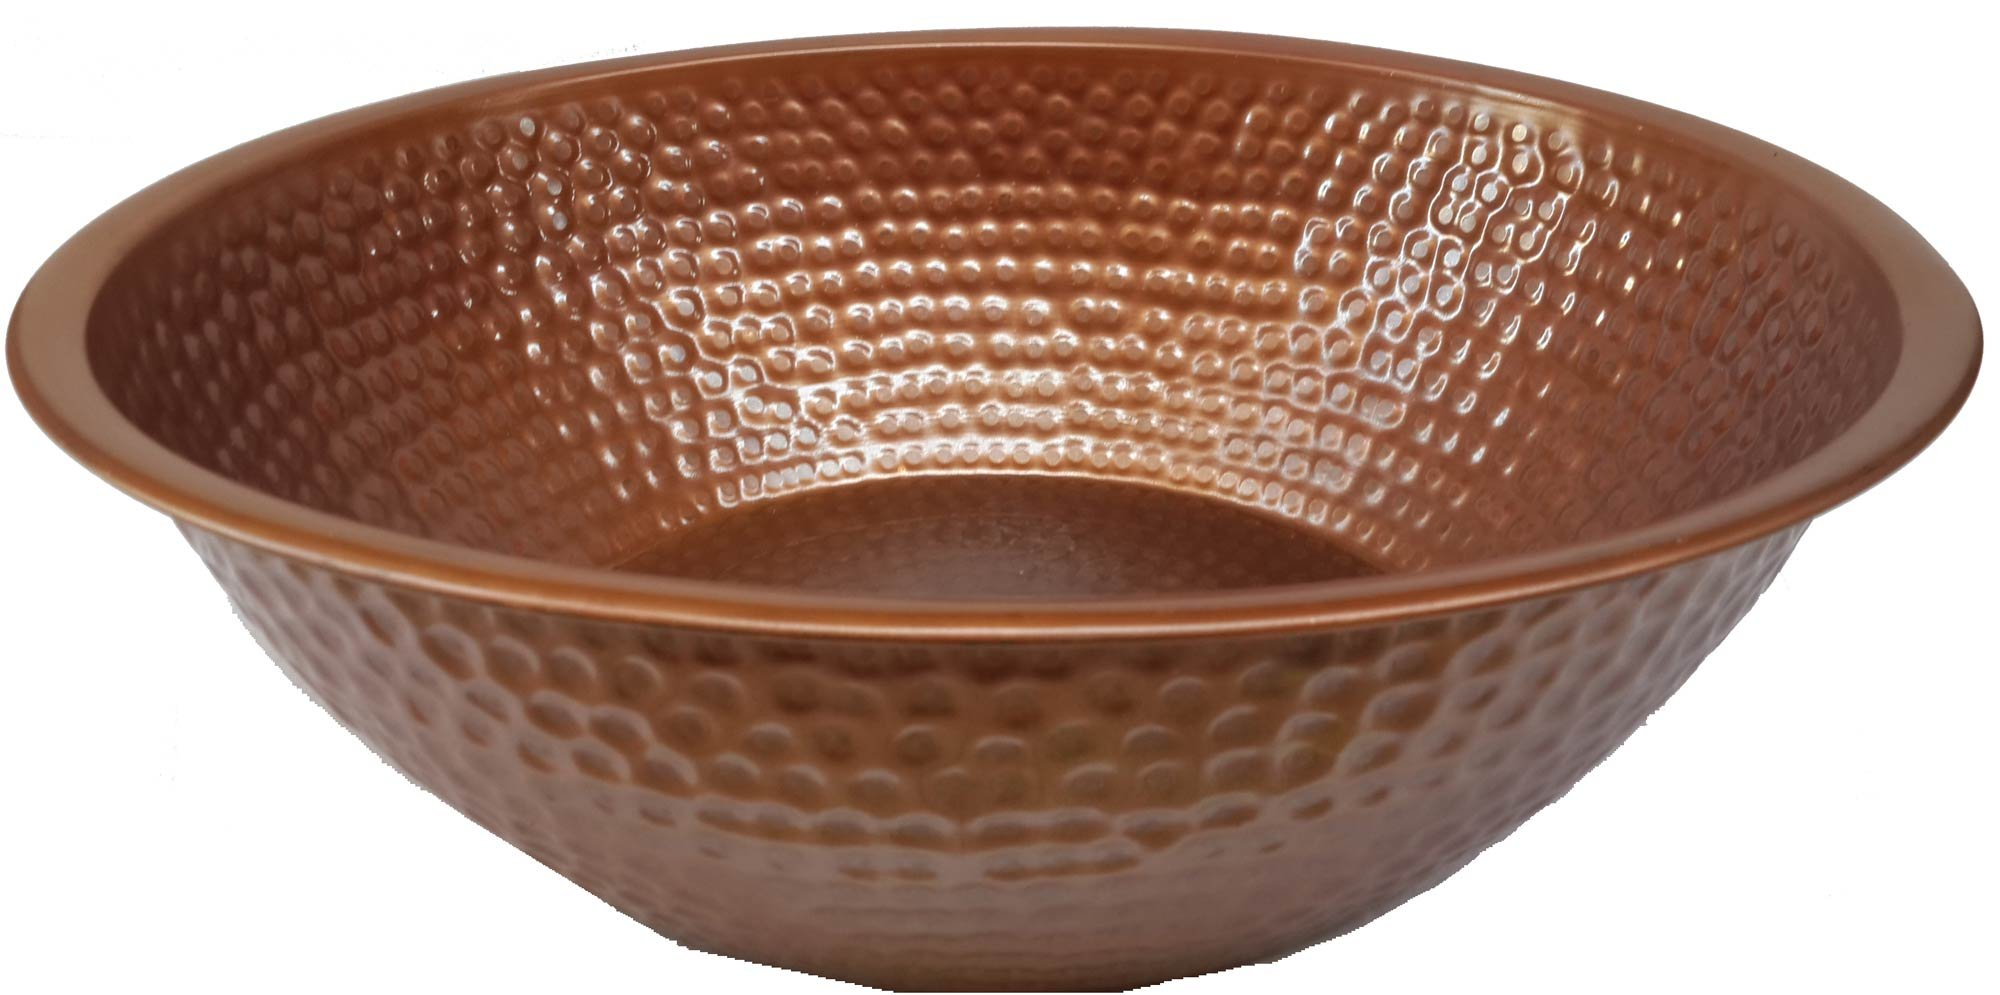 Egypt gift shops Handmade Oil Rubbed Wedding Bride Pedicure Spa Foot Bath Soak Massage Therapy Fatigue Relief Clinic Resort Pure Natural Copper Bowl by Egypt gift shops (Image #1)